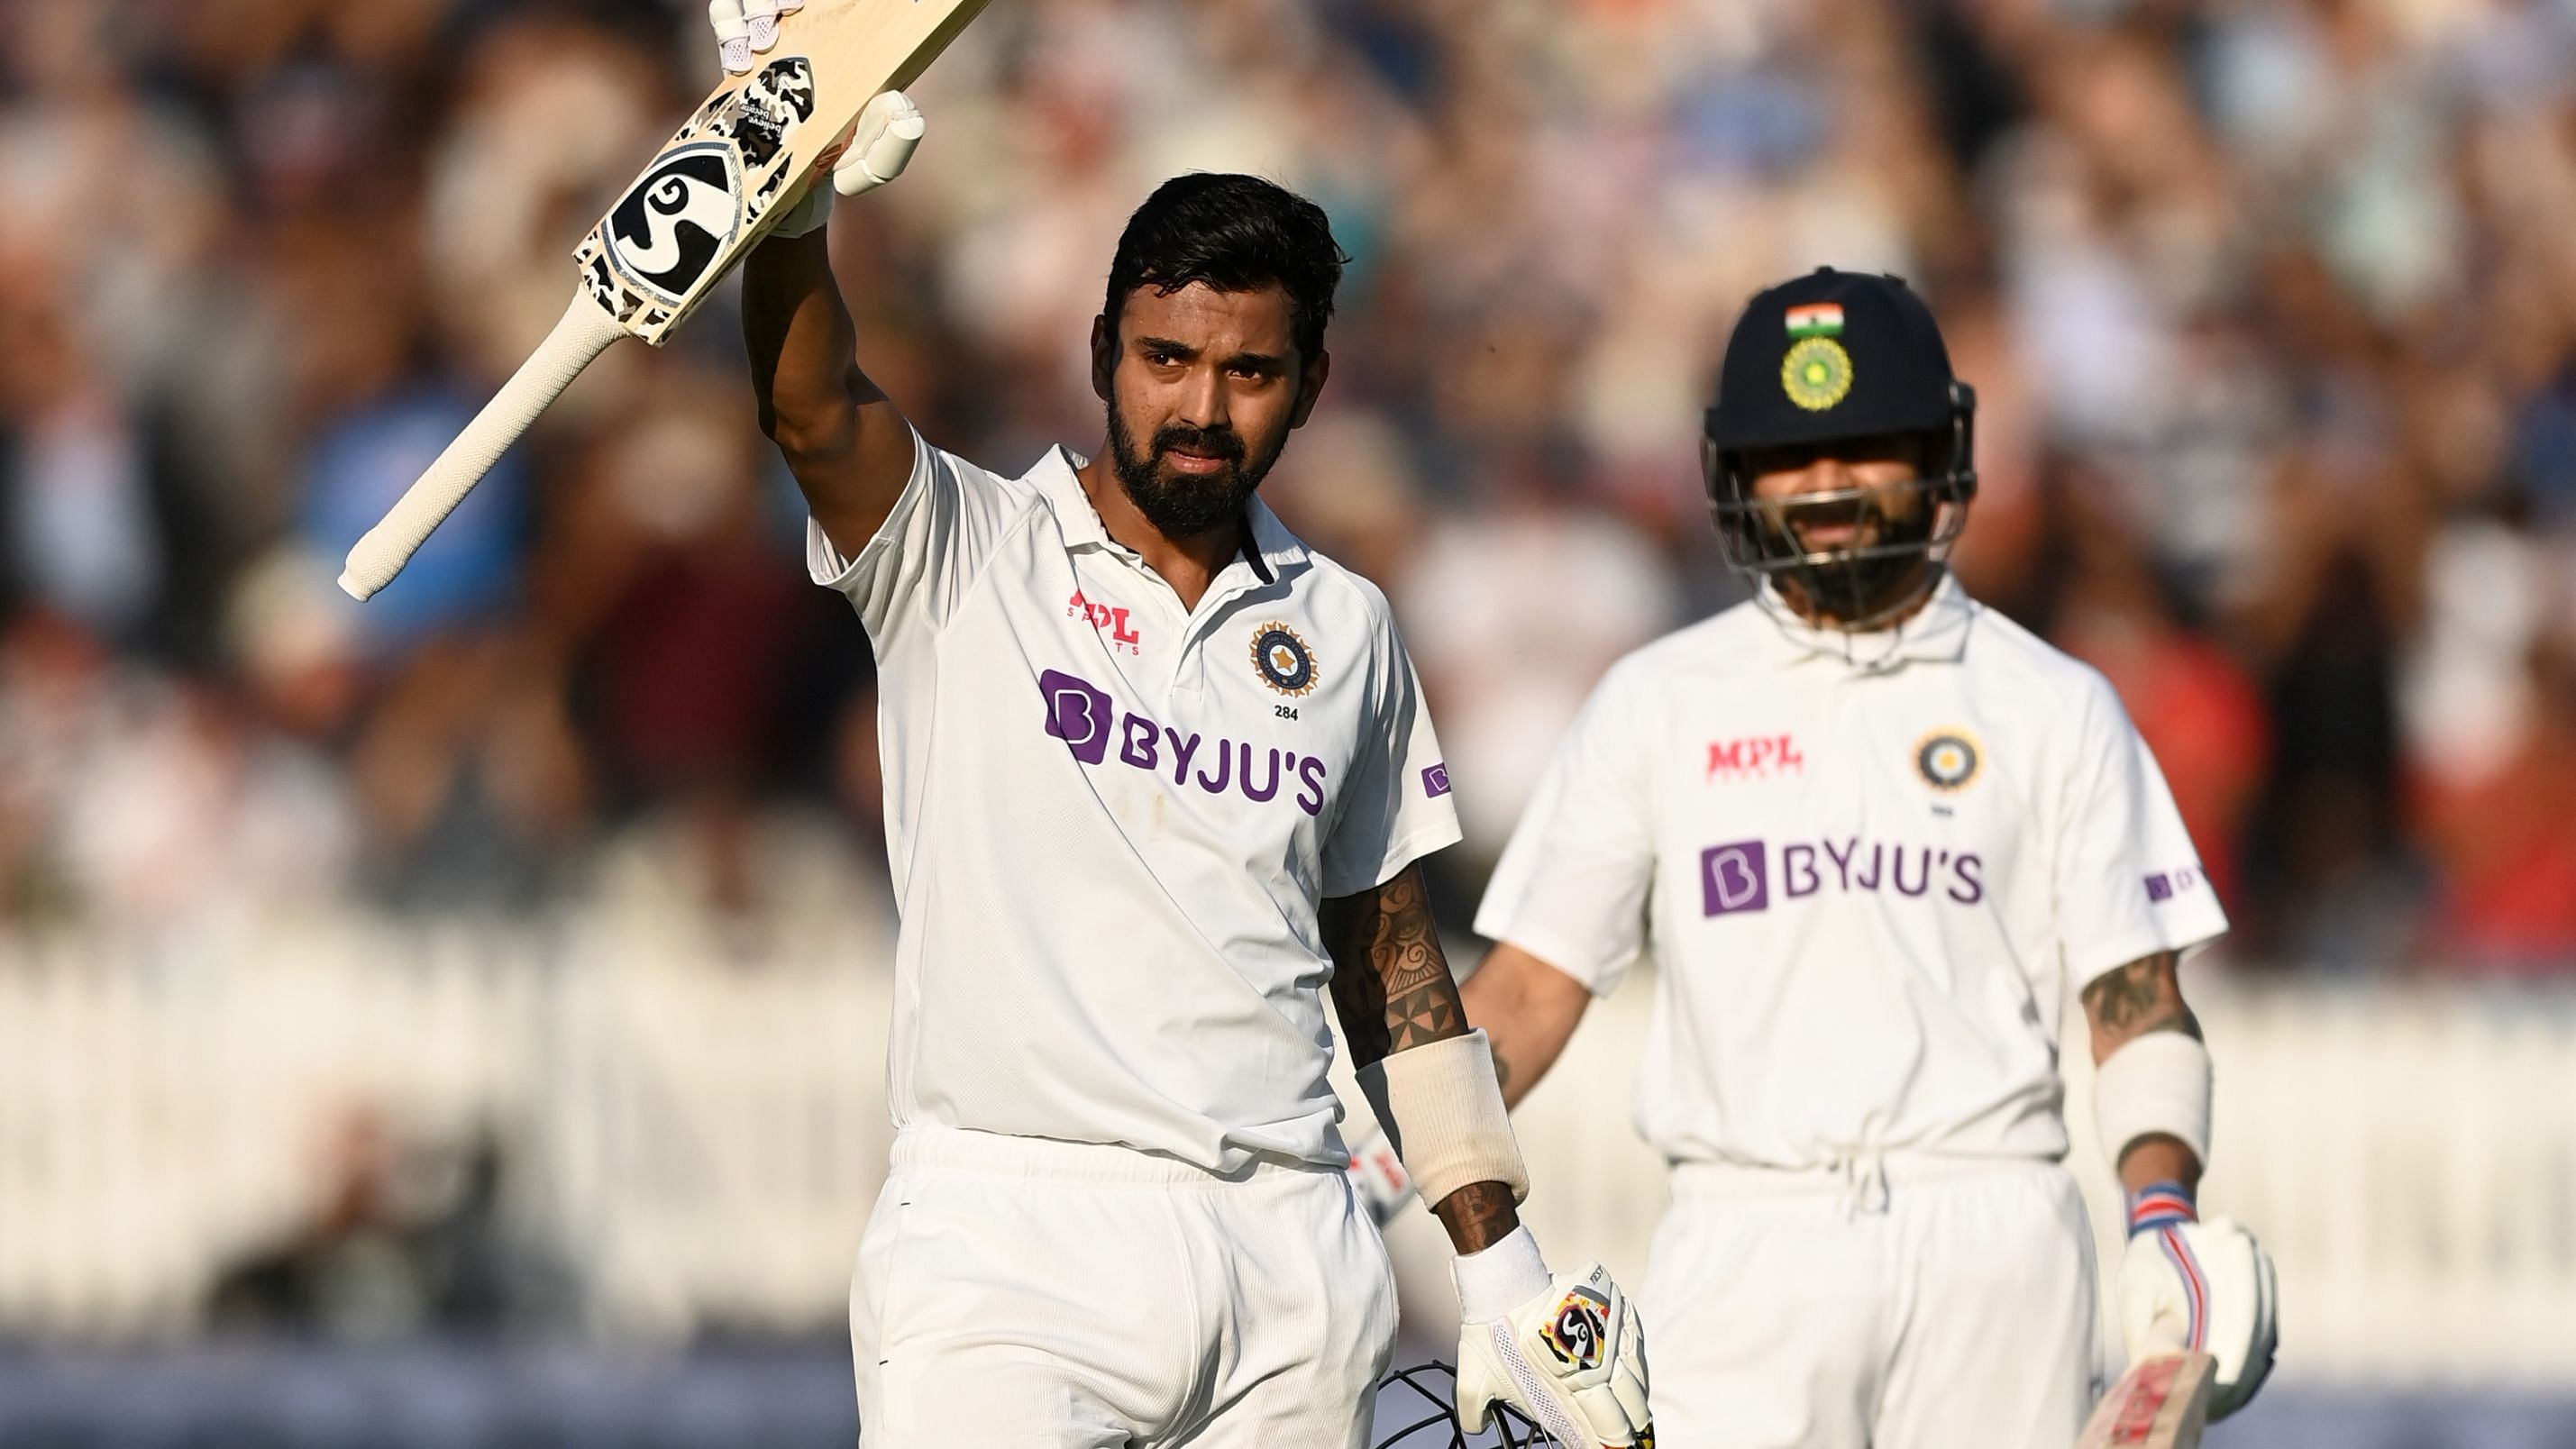 KL Rahul Scores 100, Rohit Sharma Gets 83 as India Take Control at Lord's  Against England